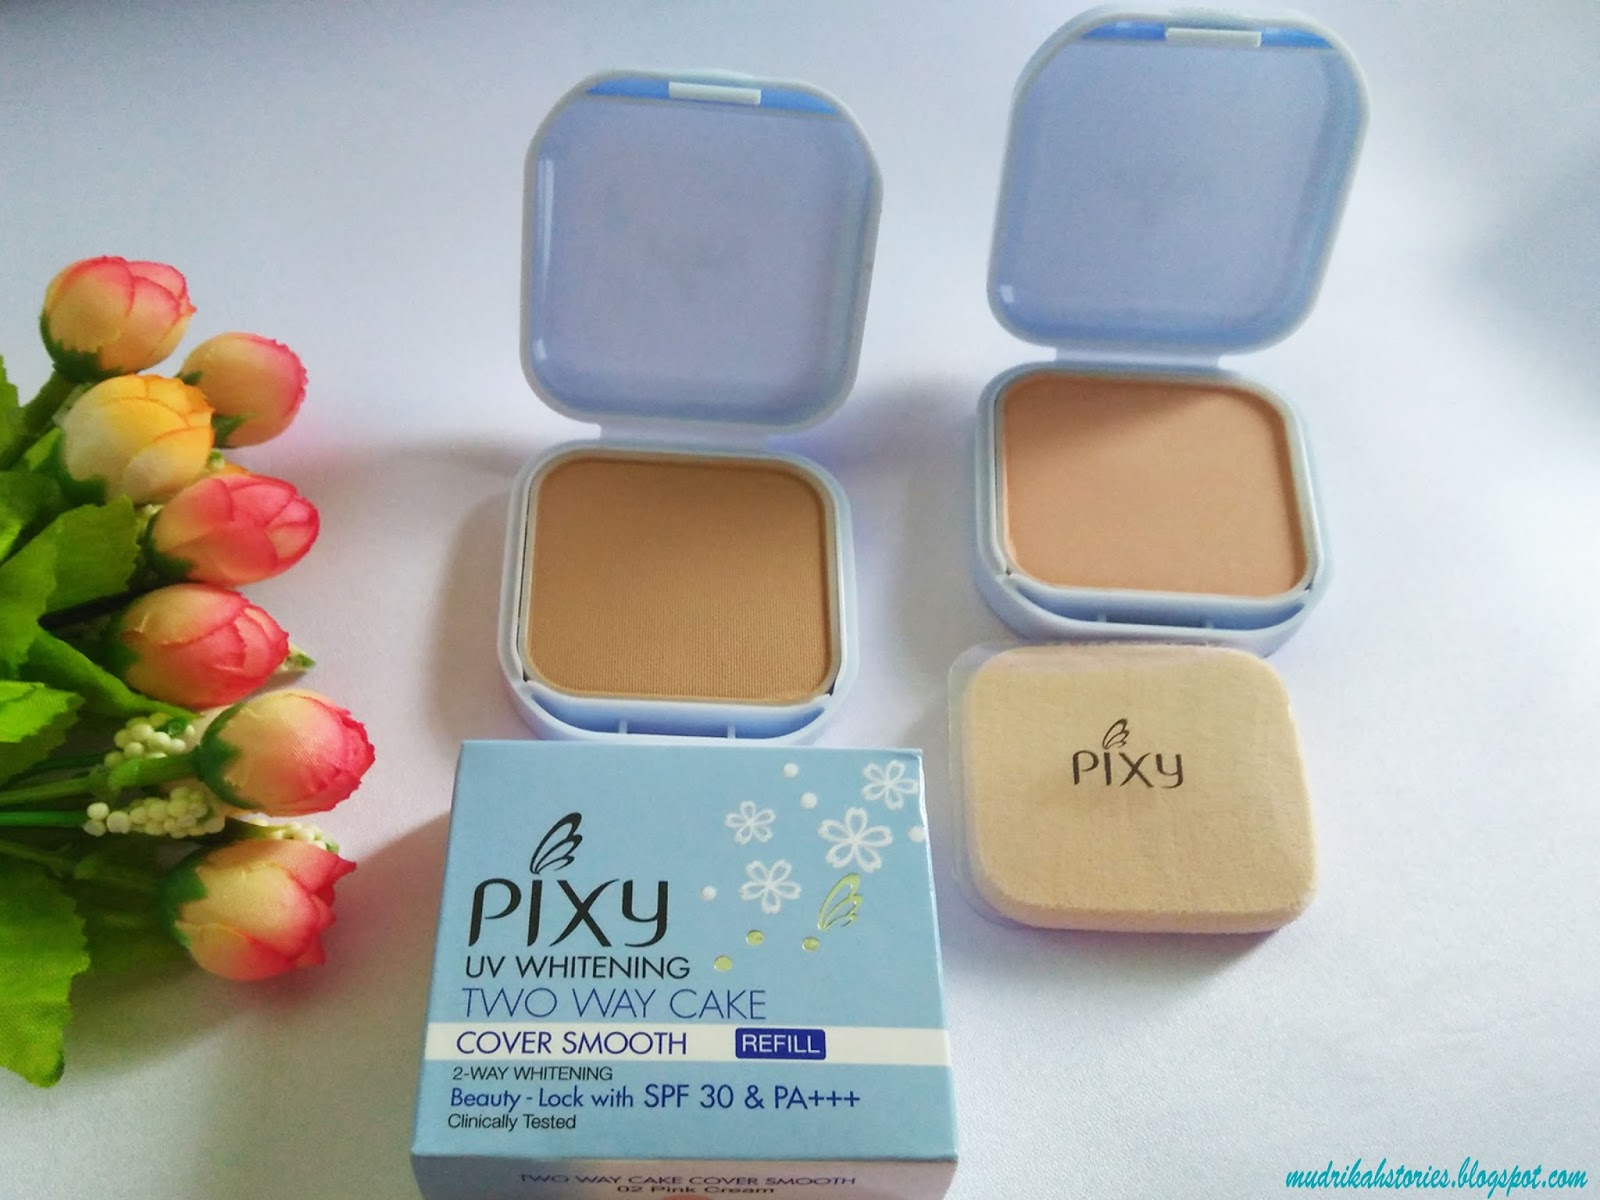 Review PIXY Two Way Cake Cover Smooth